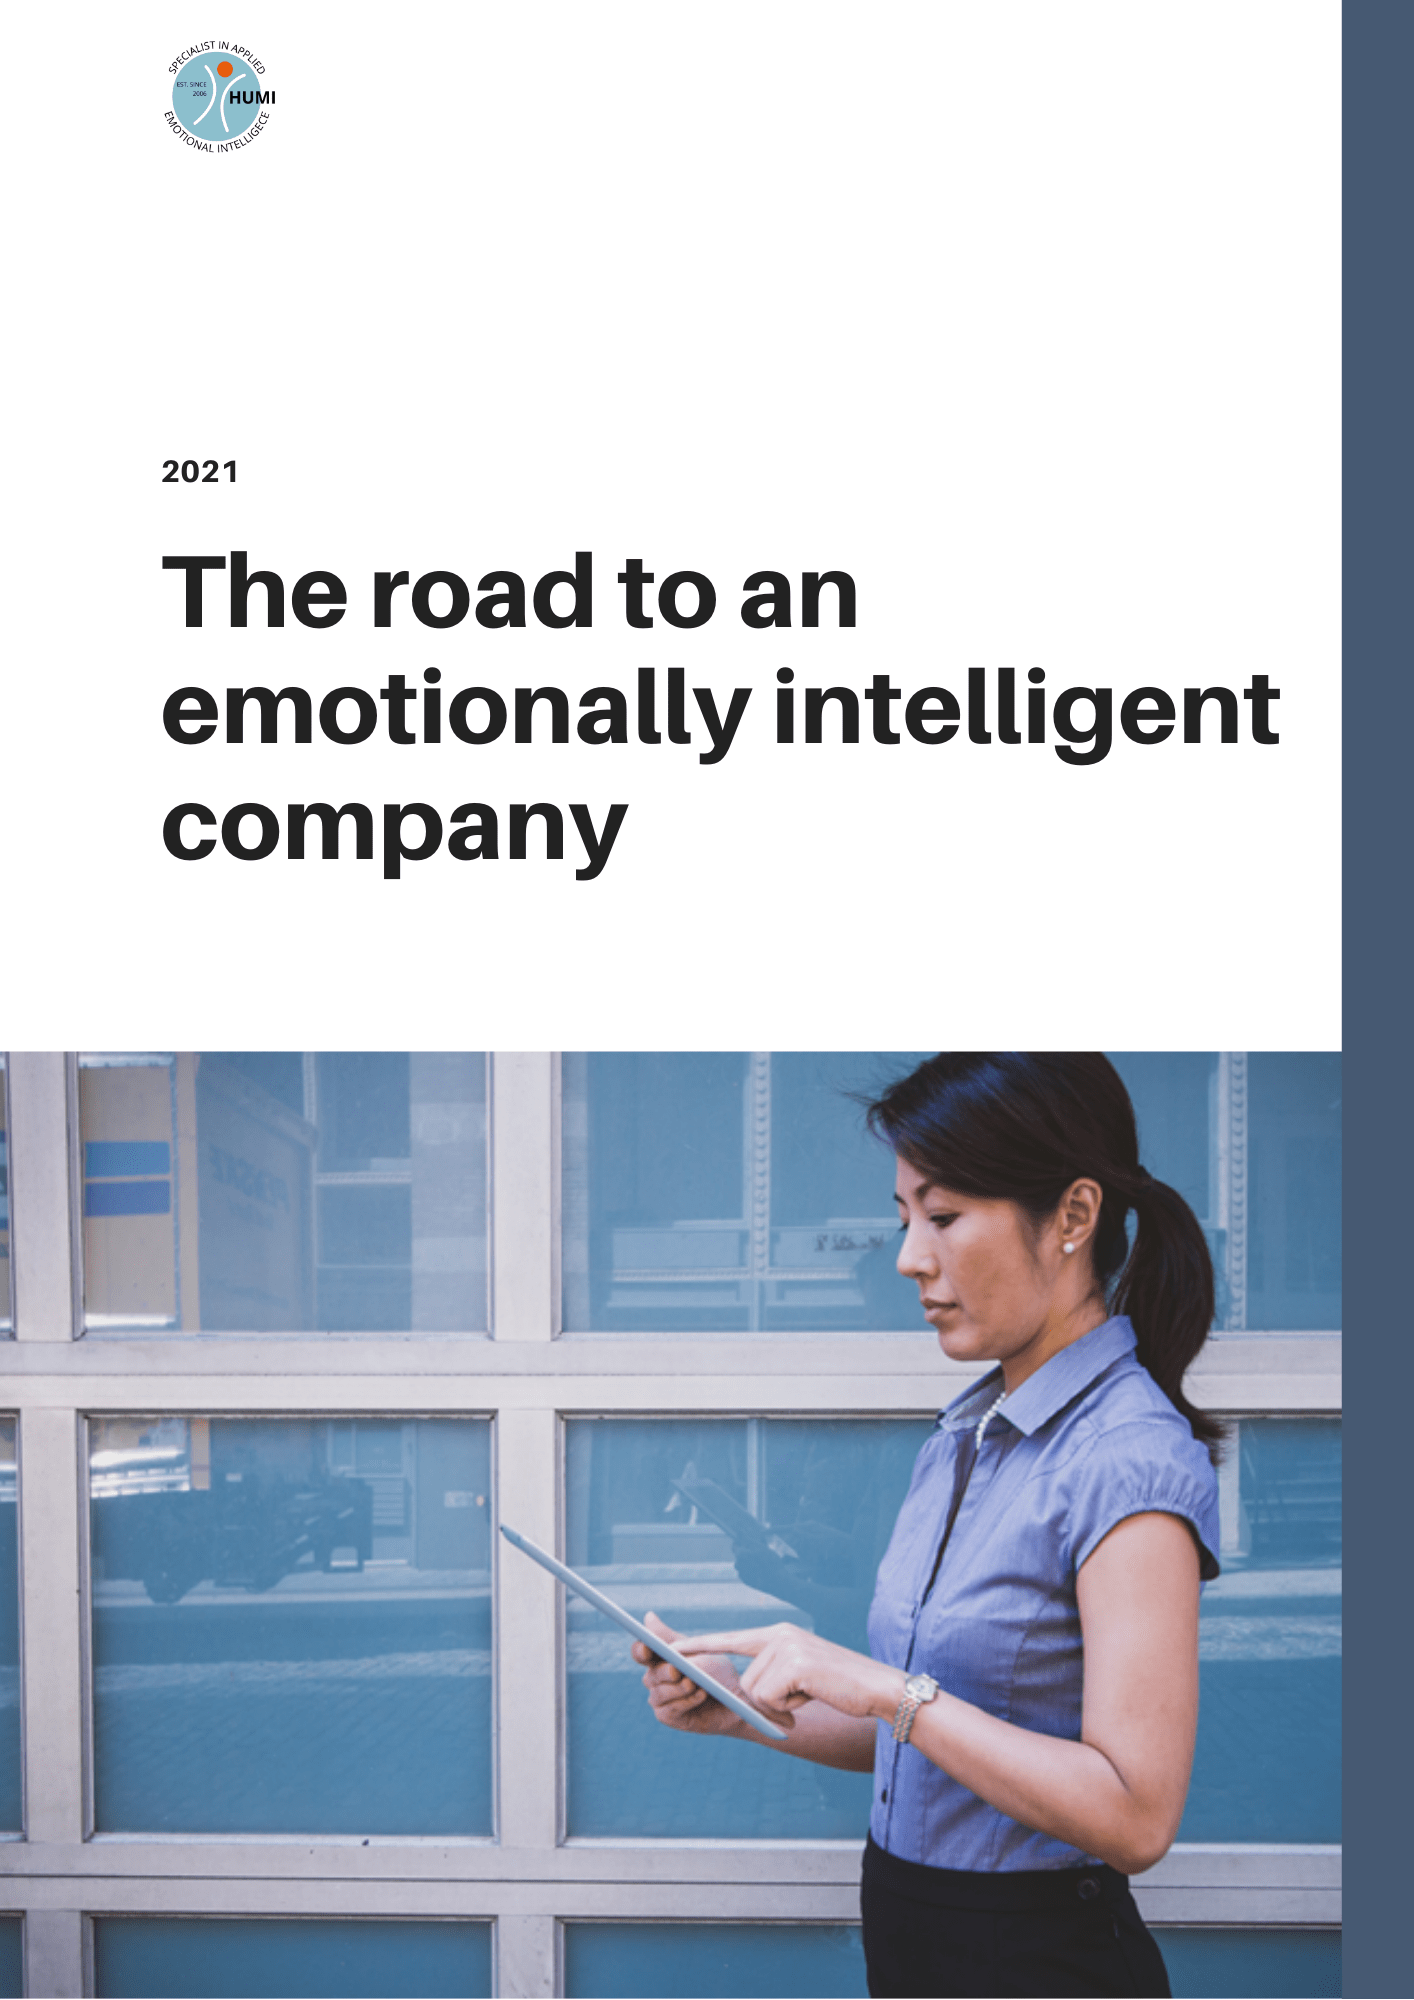 The road to and emotionally intelligent company